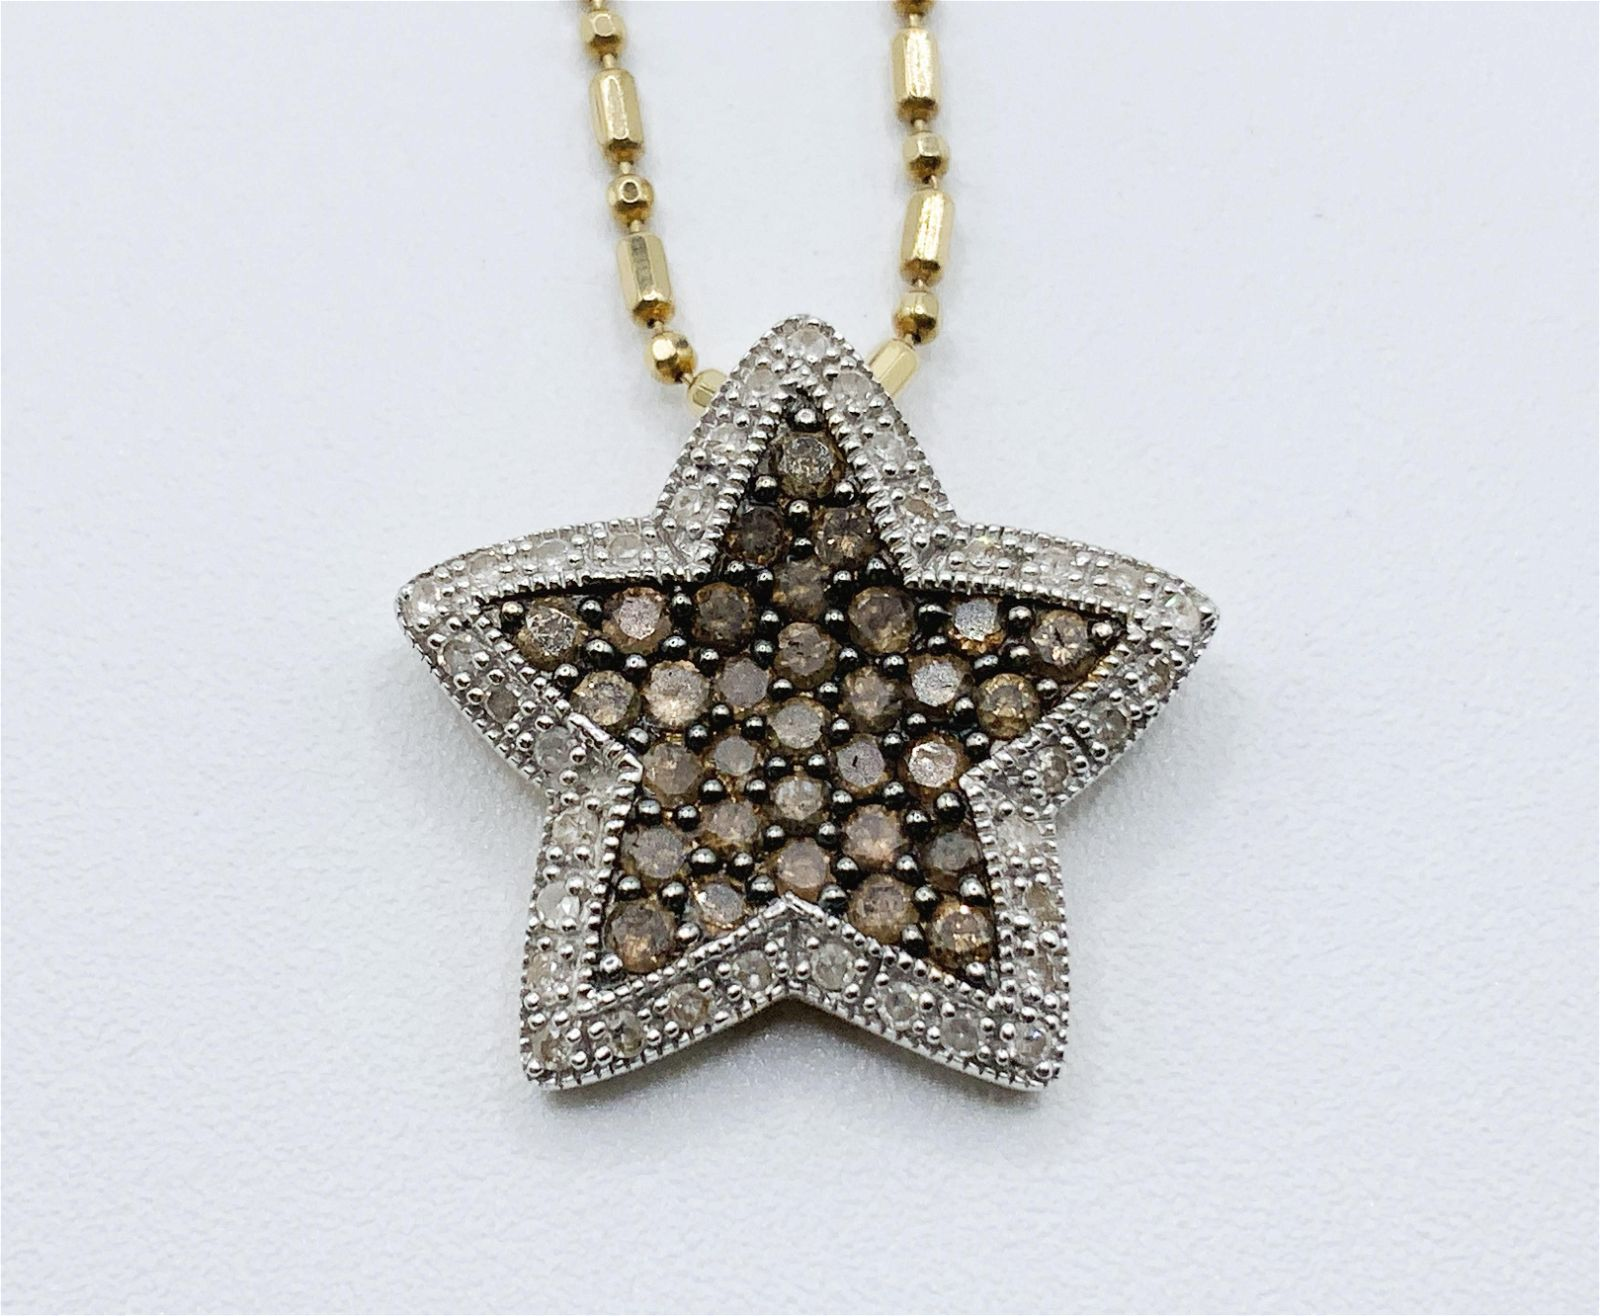 14kt Gold Multi Gemstone Star Pendant and Chain